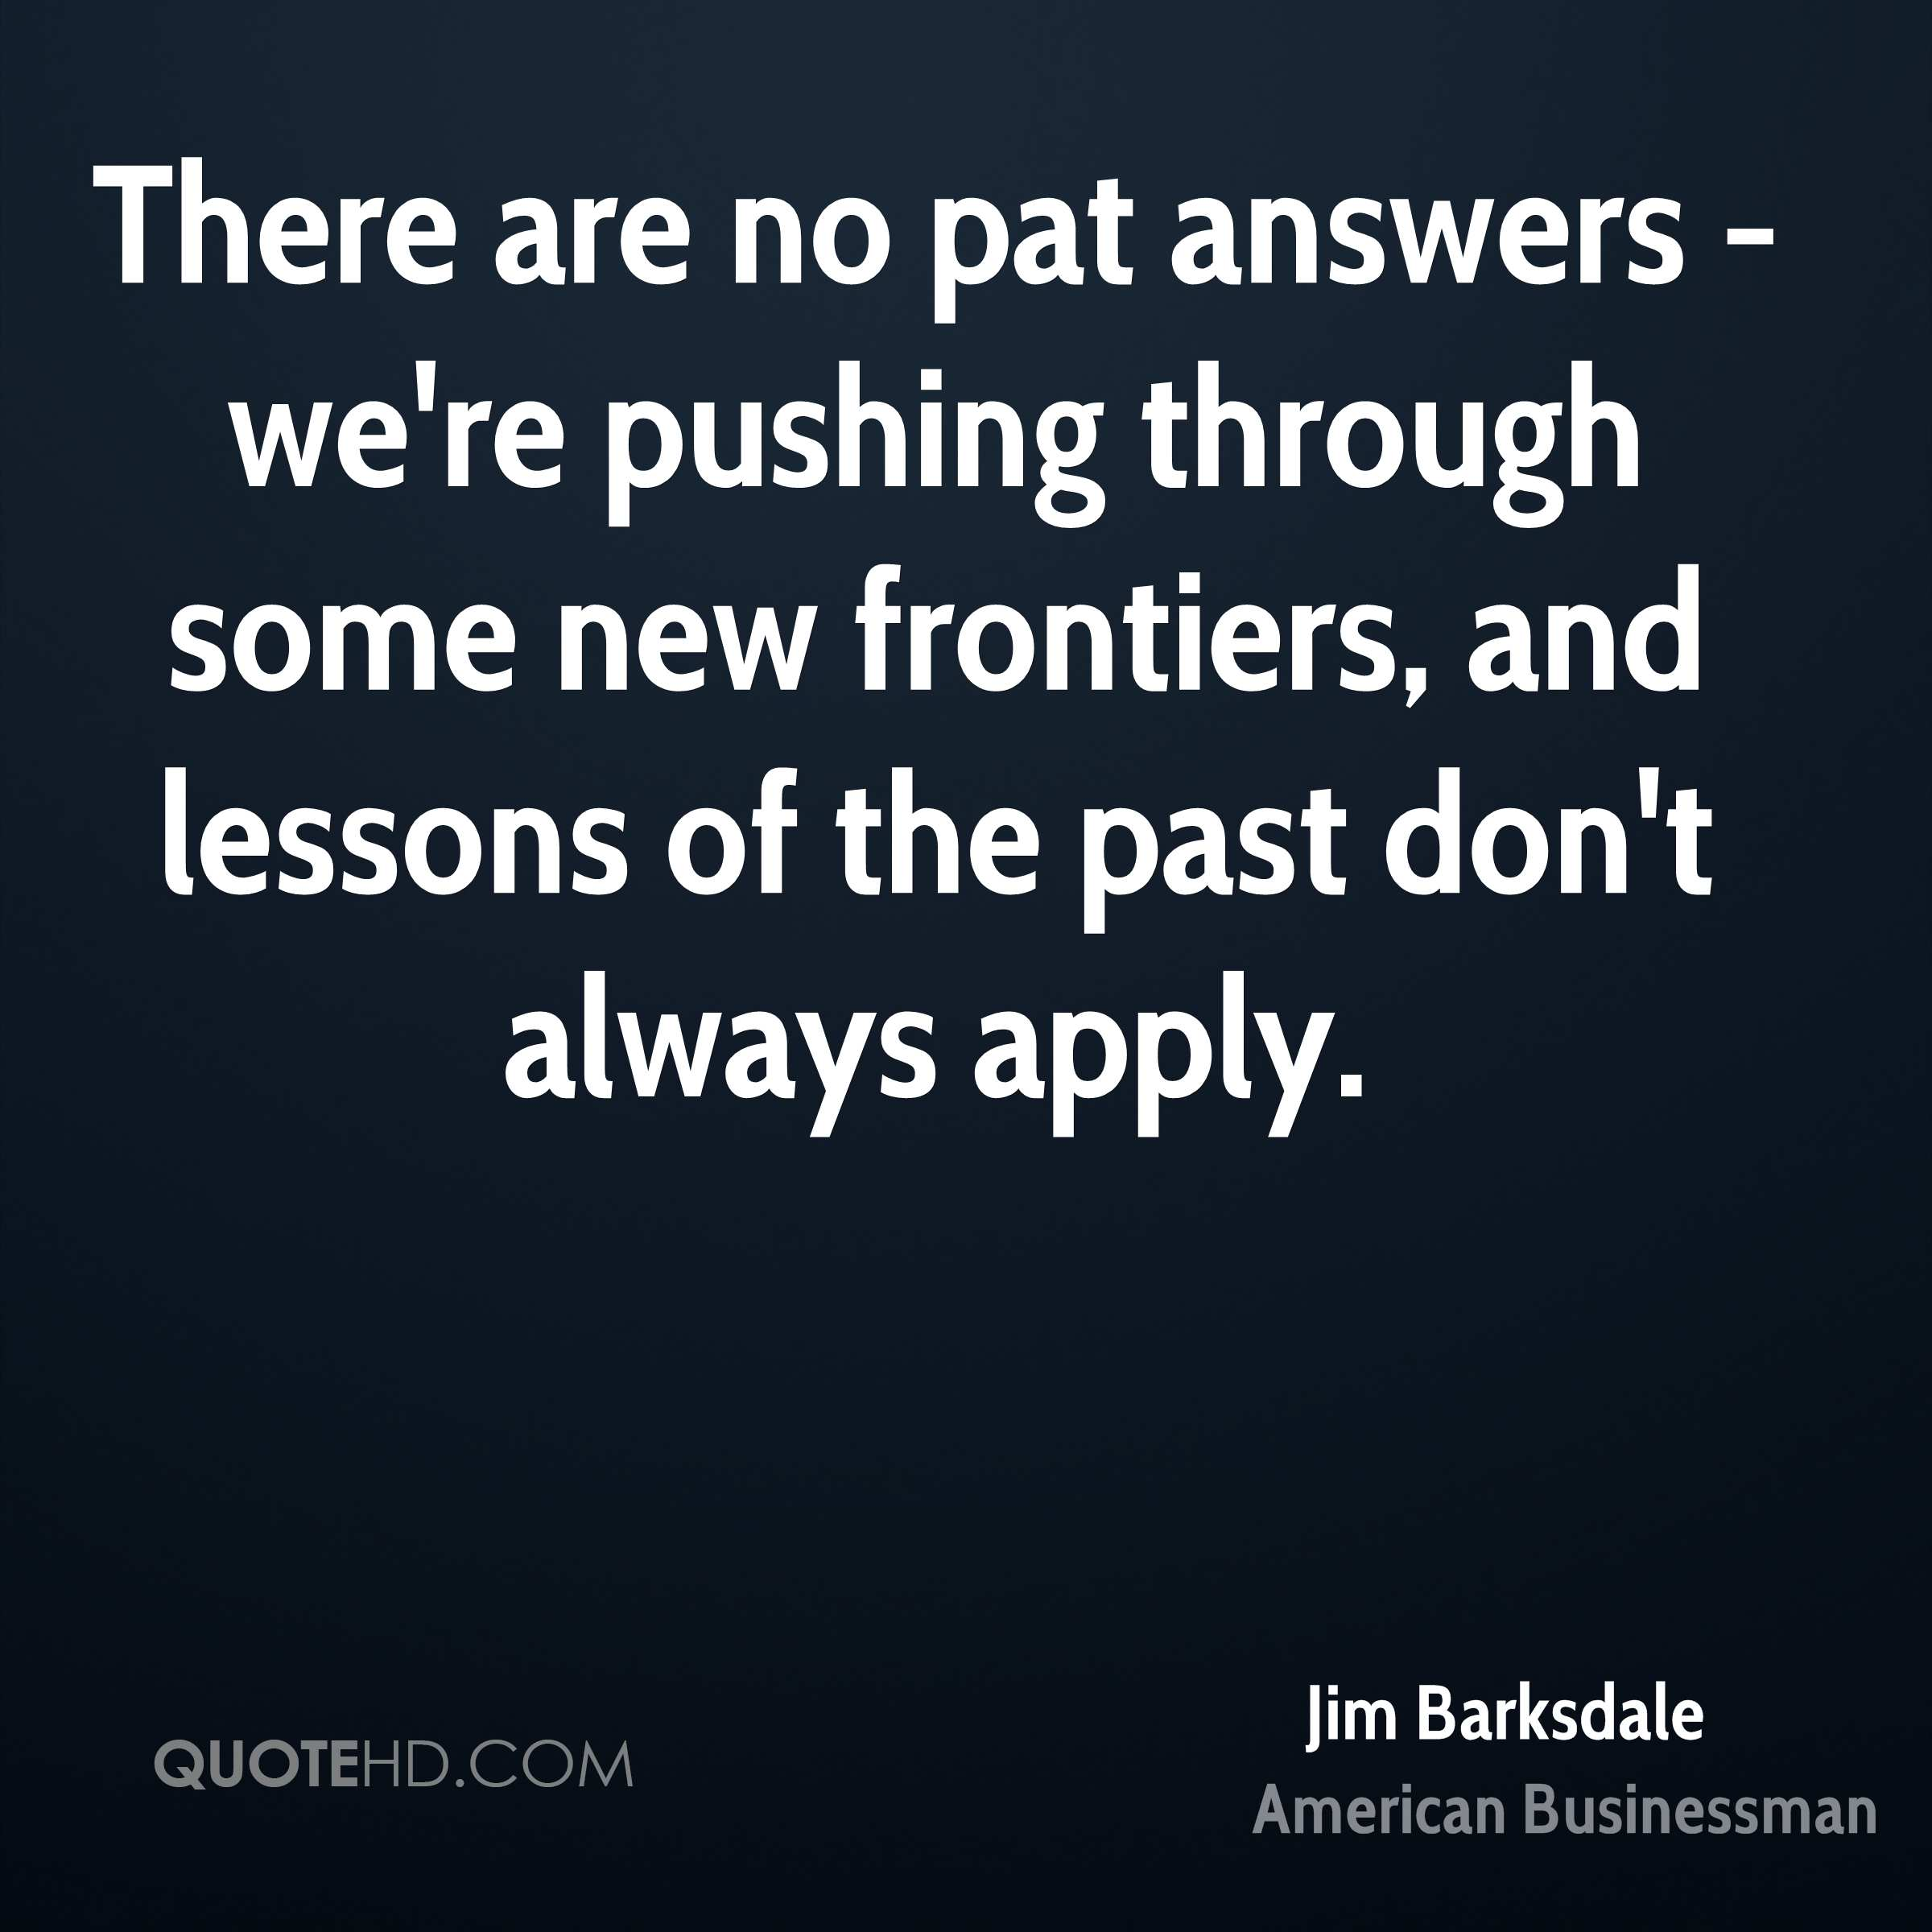 There are no pat answers - we're pushing through some new frontiers, and lessons of the past don't always apply.